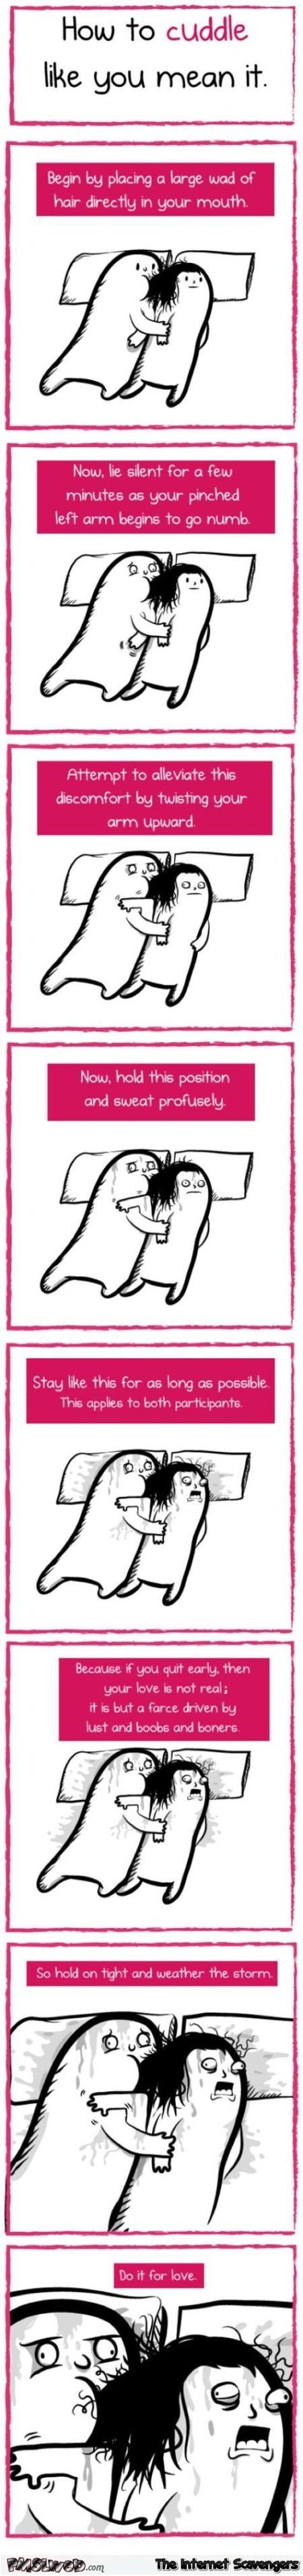 How to cuddle like you mean it funny cartoon @PMSLweb.com